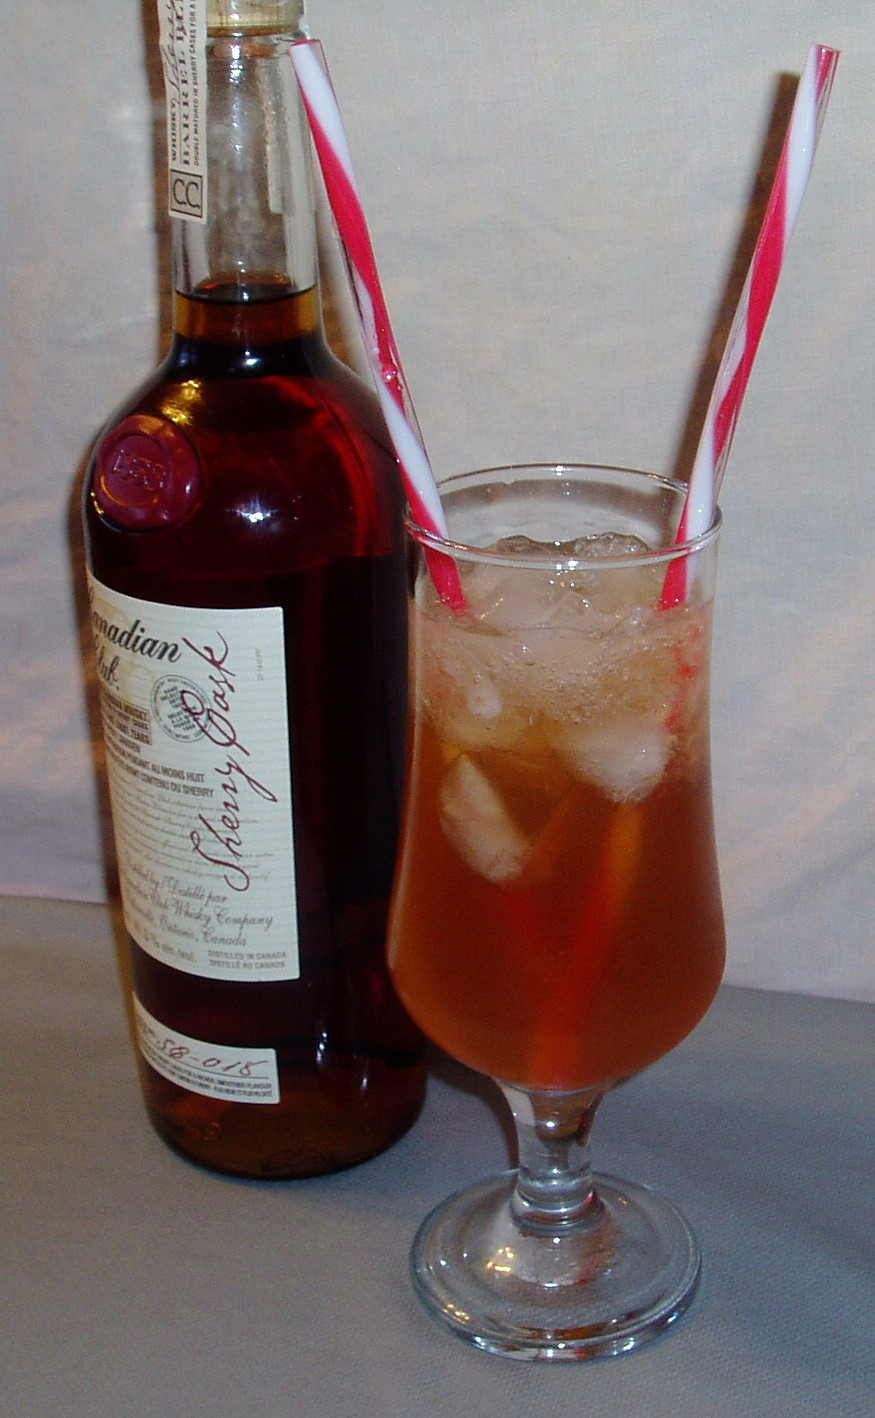 Canadian Club Swizzle